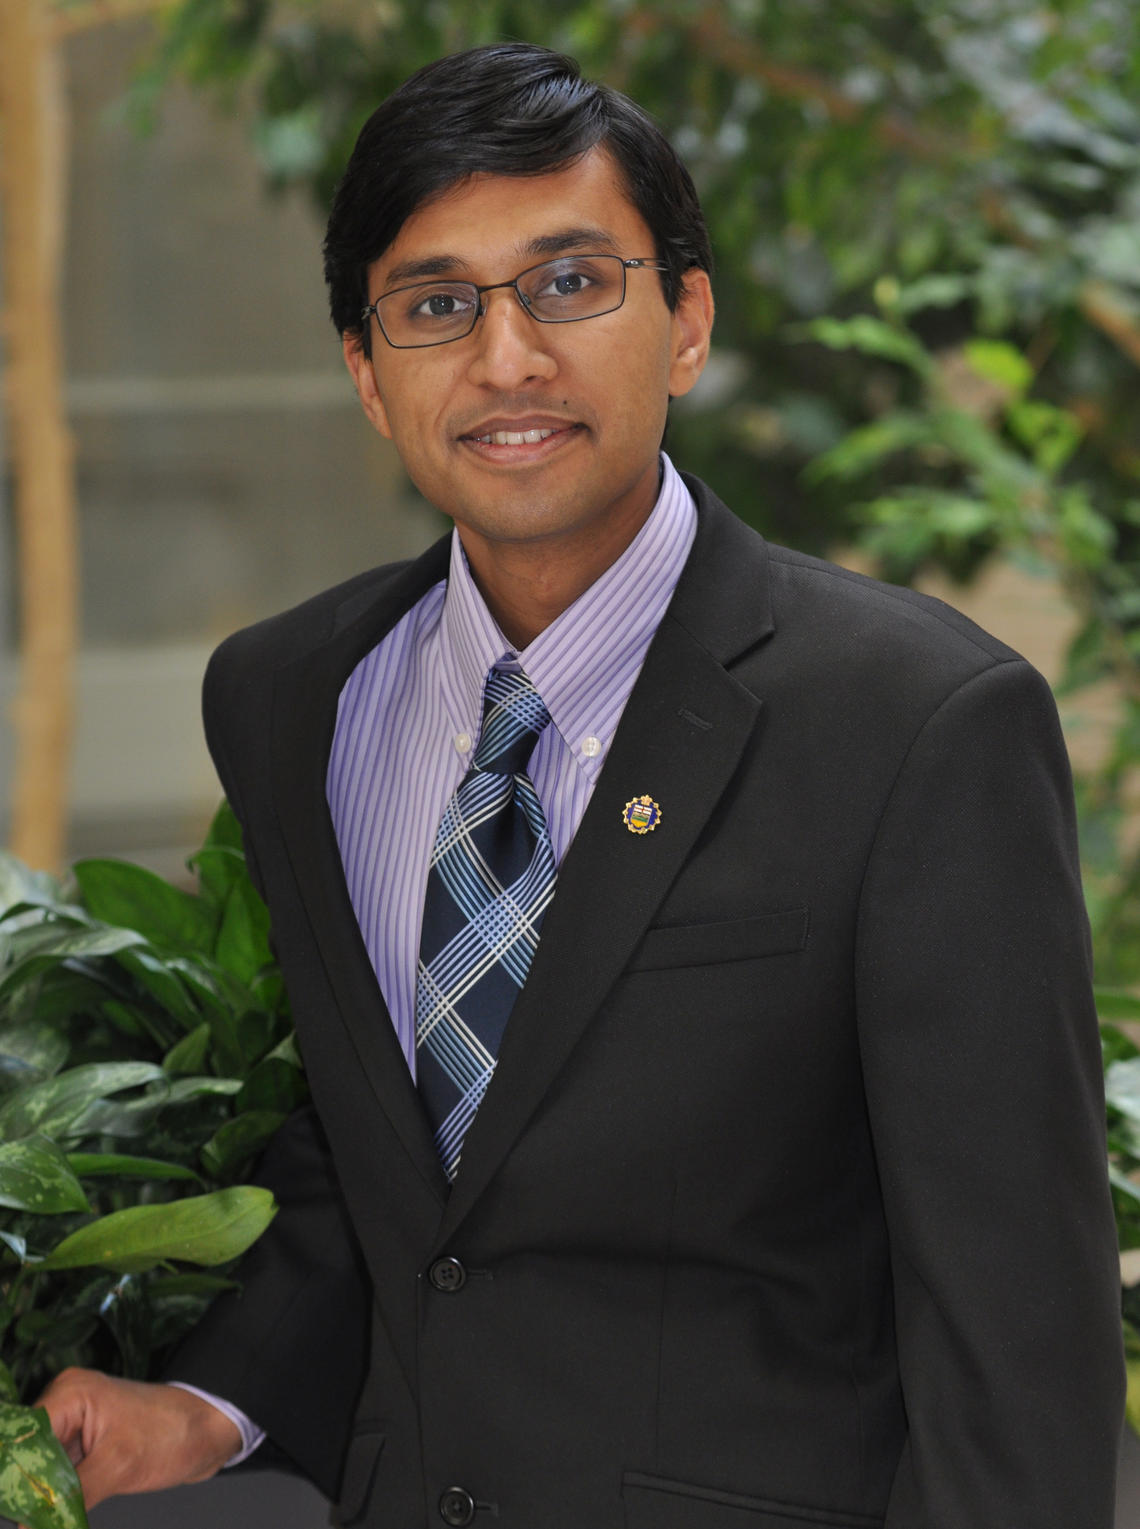 """I owe my career to him, I continue to learn from him and I would not be at Oxford without him,"" says Rhodes Scholar Aravind Ganesh, MD '12, of his mentor Dr. Tom Feasby."